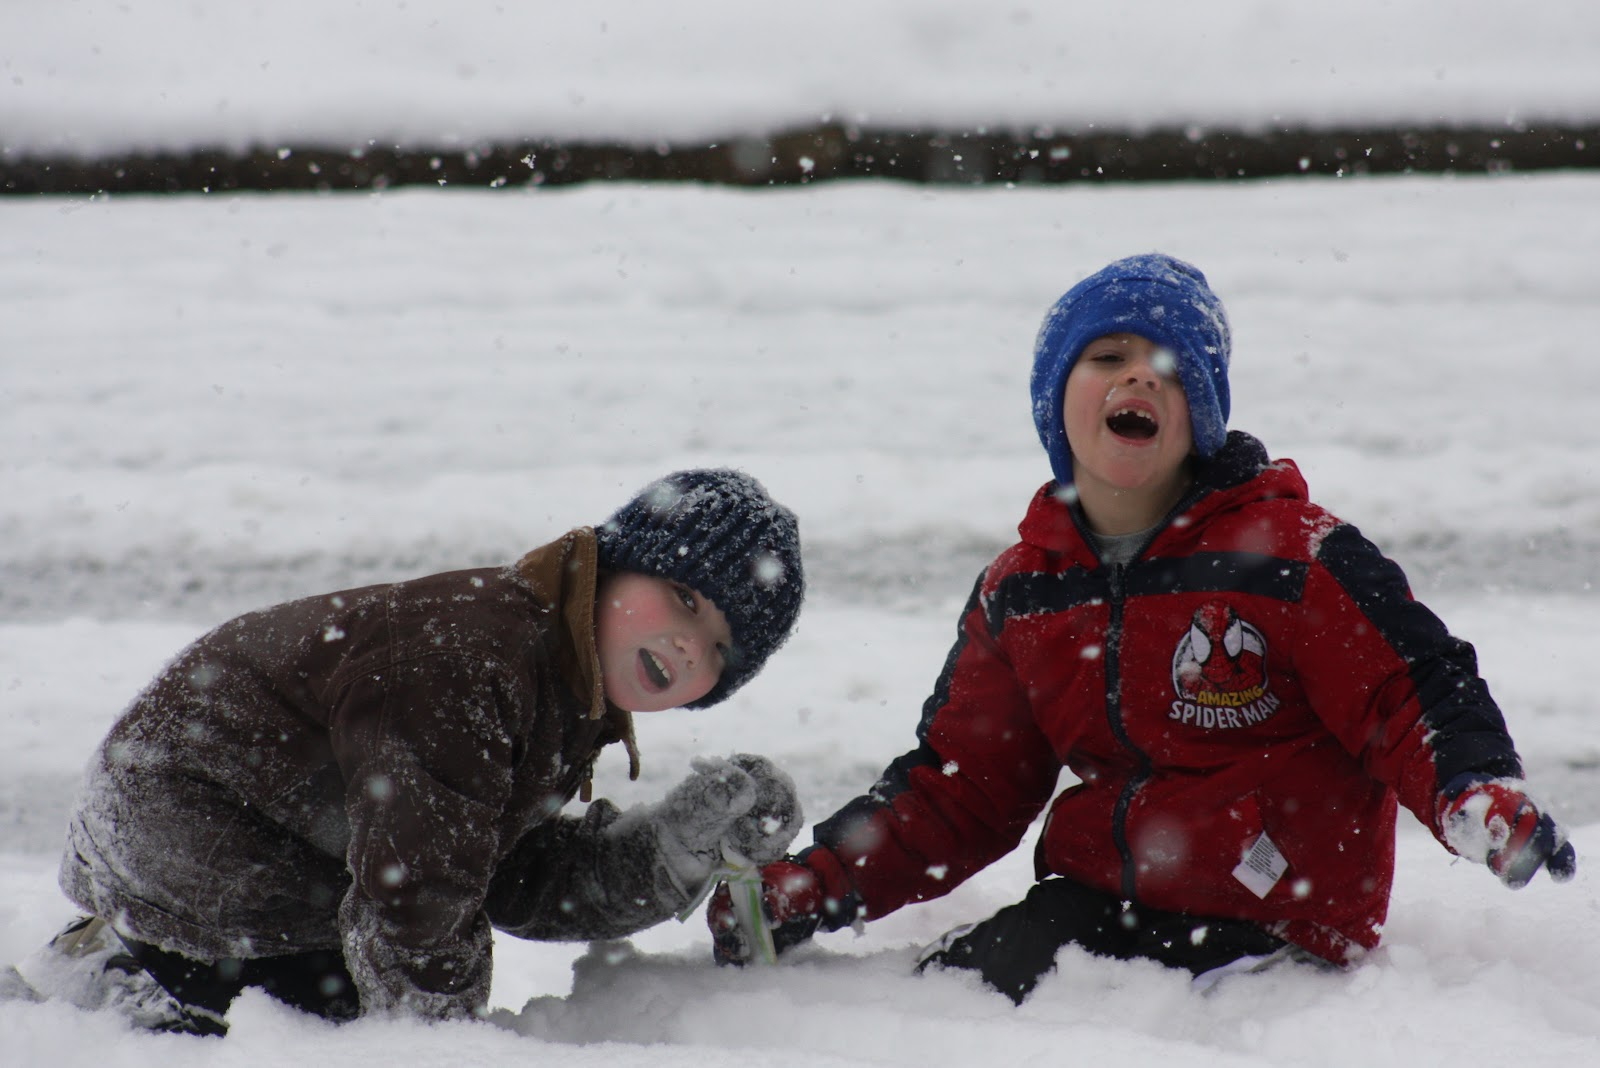 Planning A Snowy Adventure With Kids?